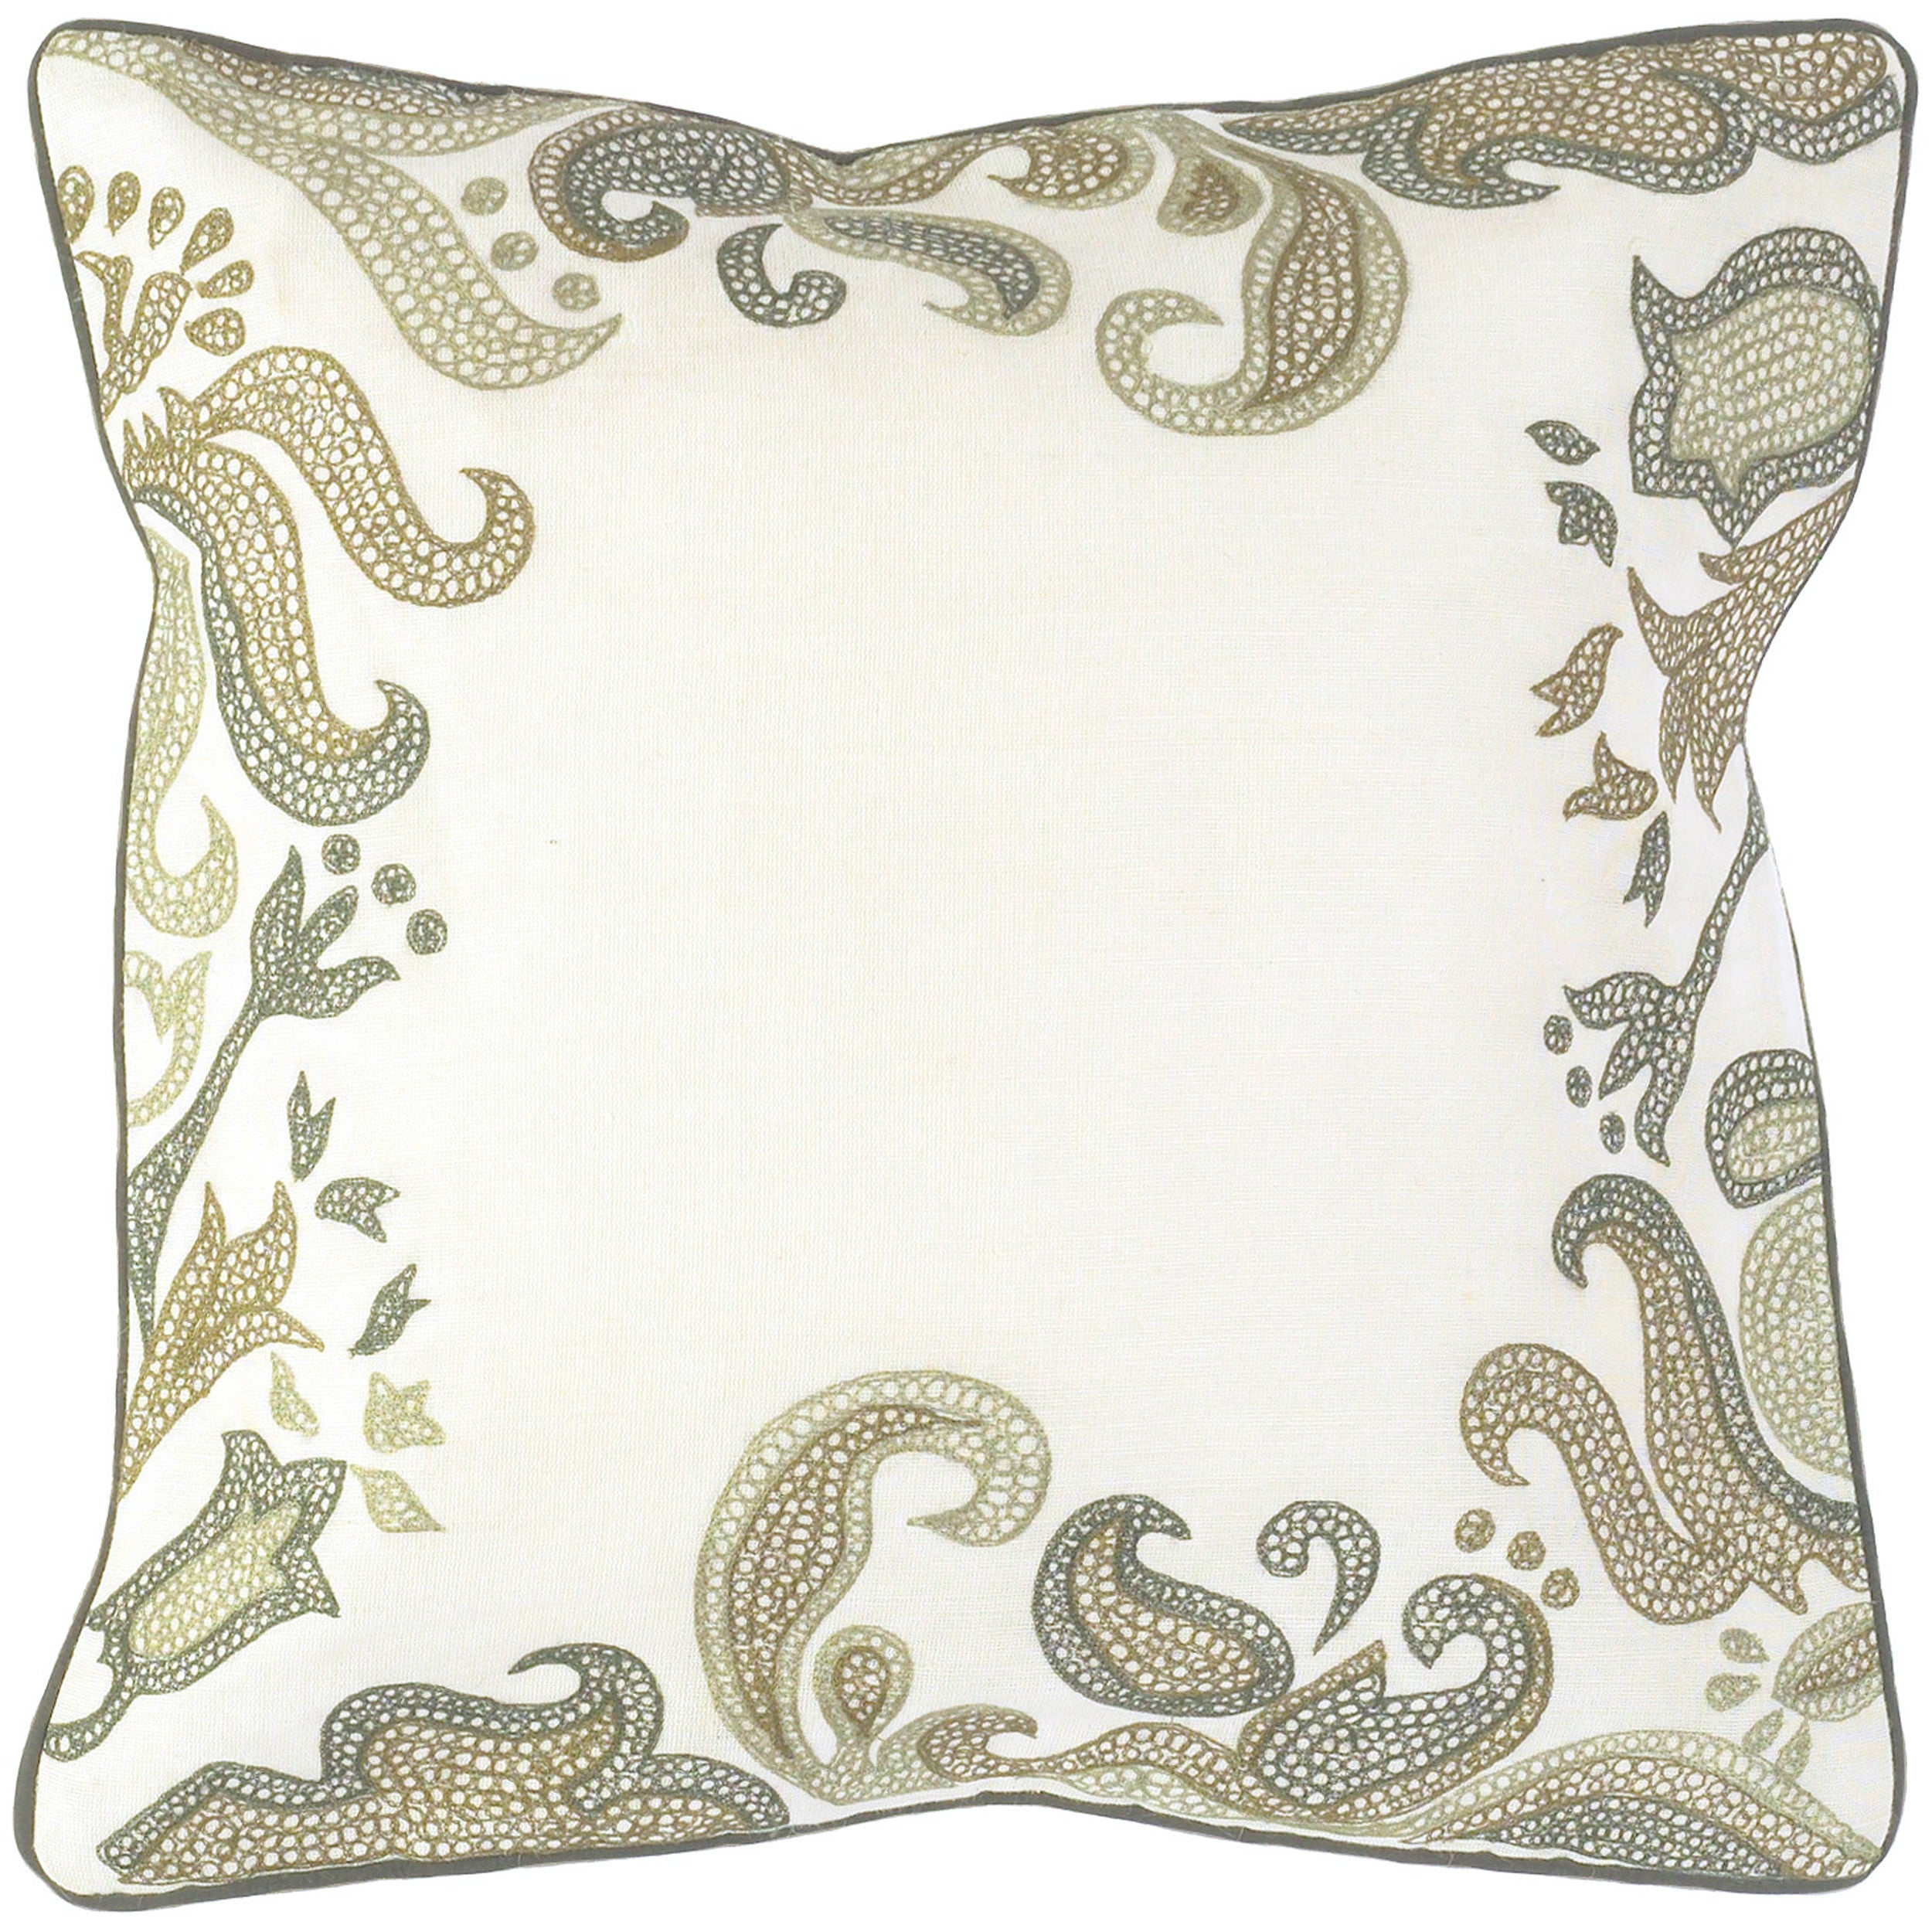 Andover Beige Floral Down Filled Decorative Pillow